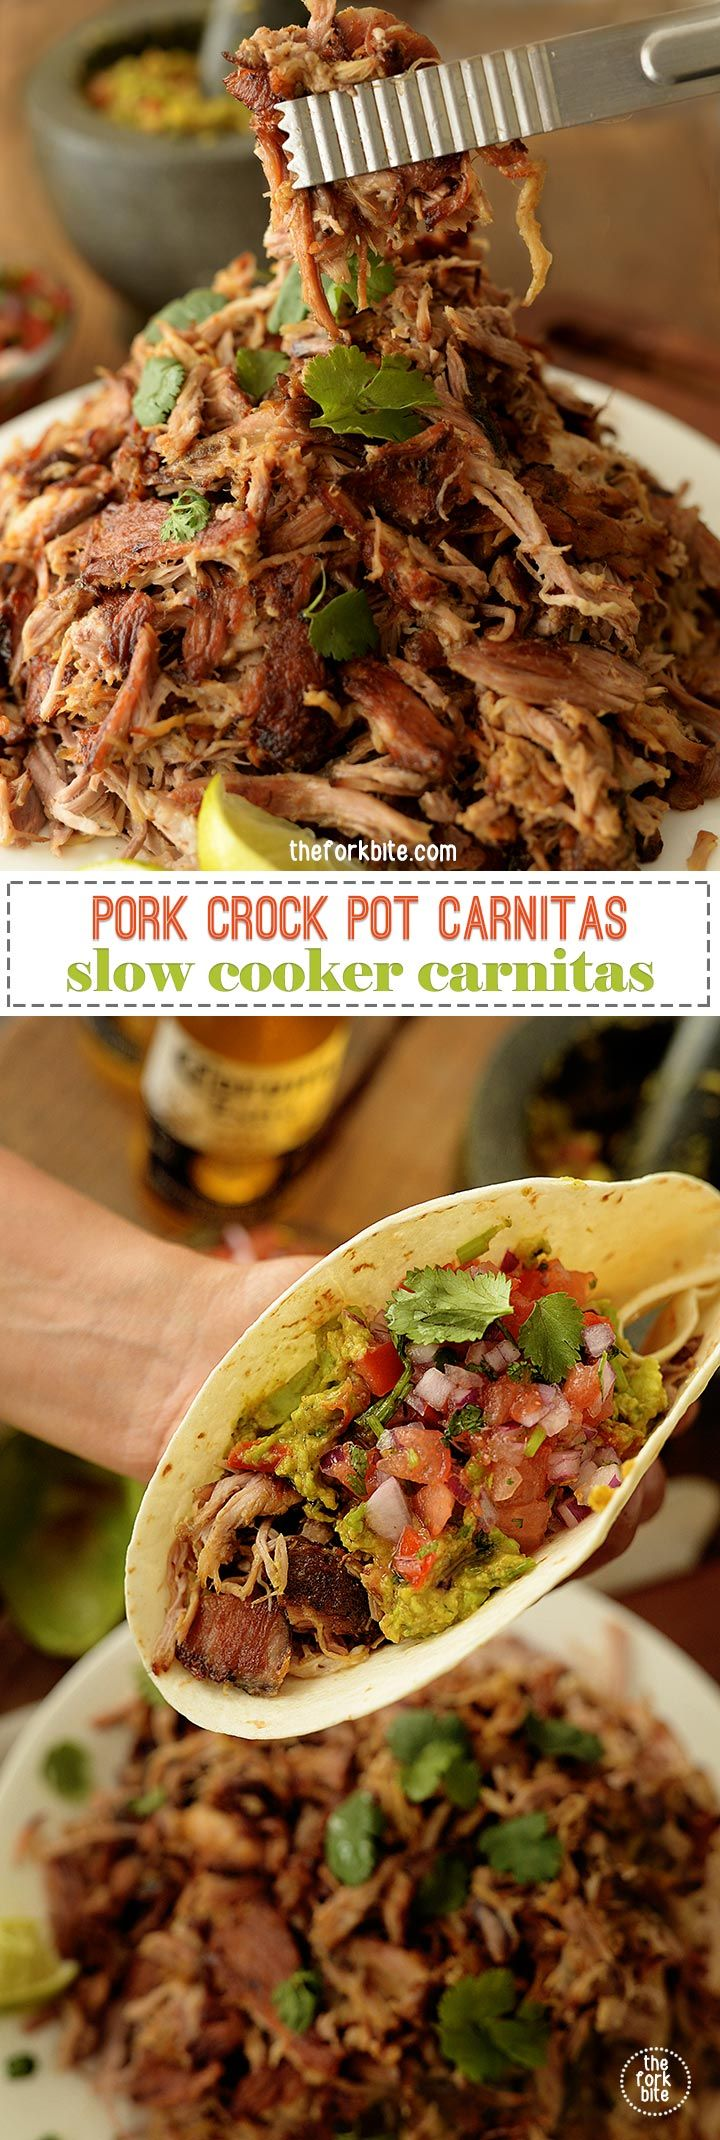 Slow Cooker Carnitas - Learn how to get that crispy brown bits while keeping the inside extra moist